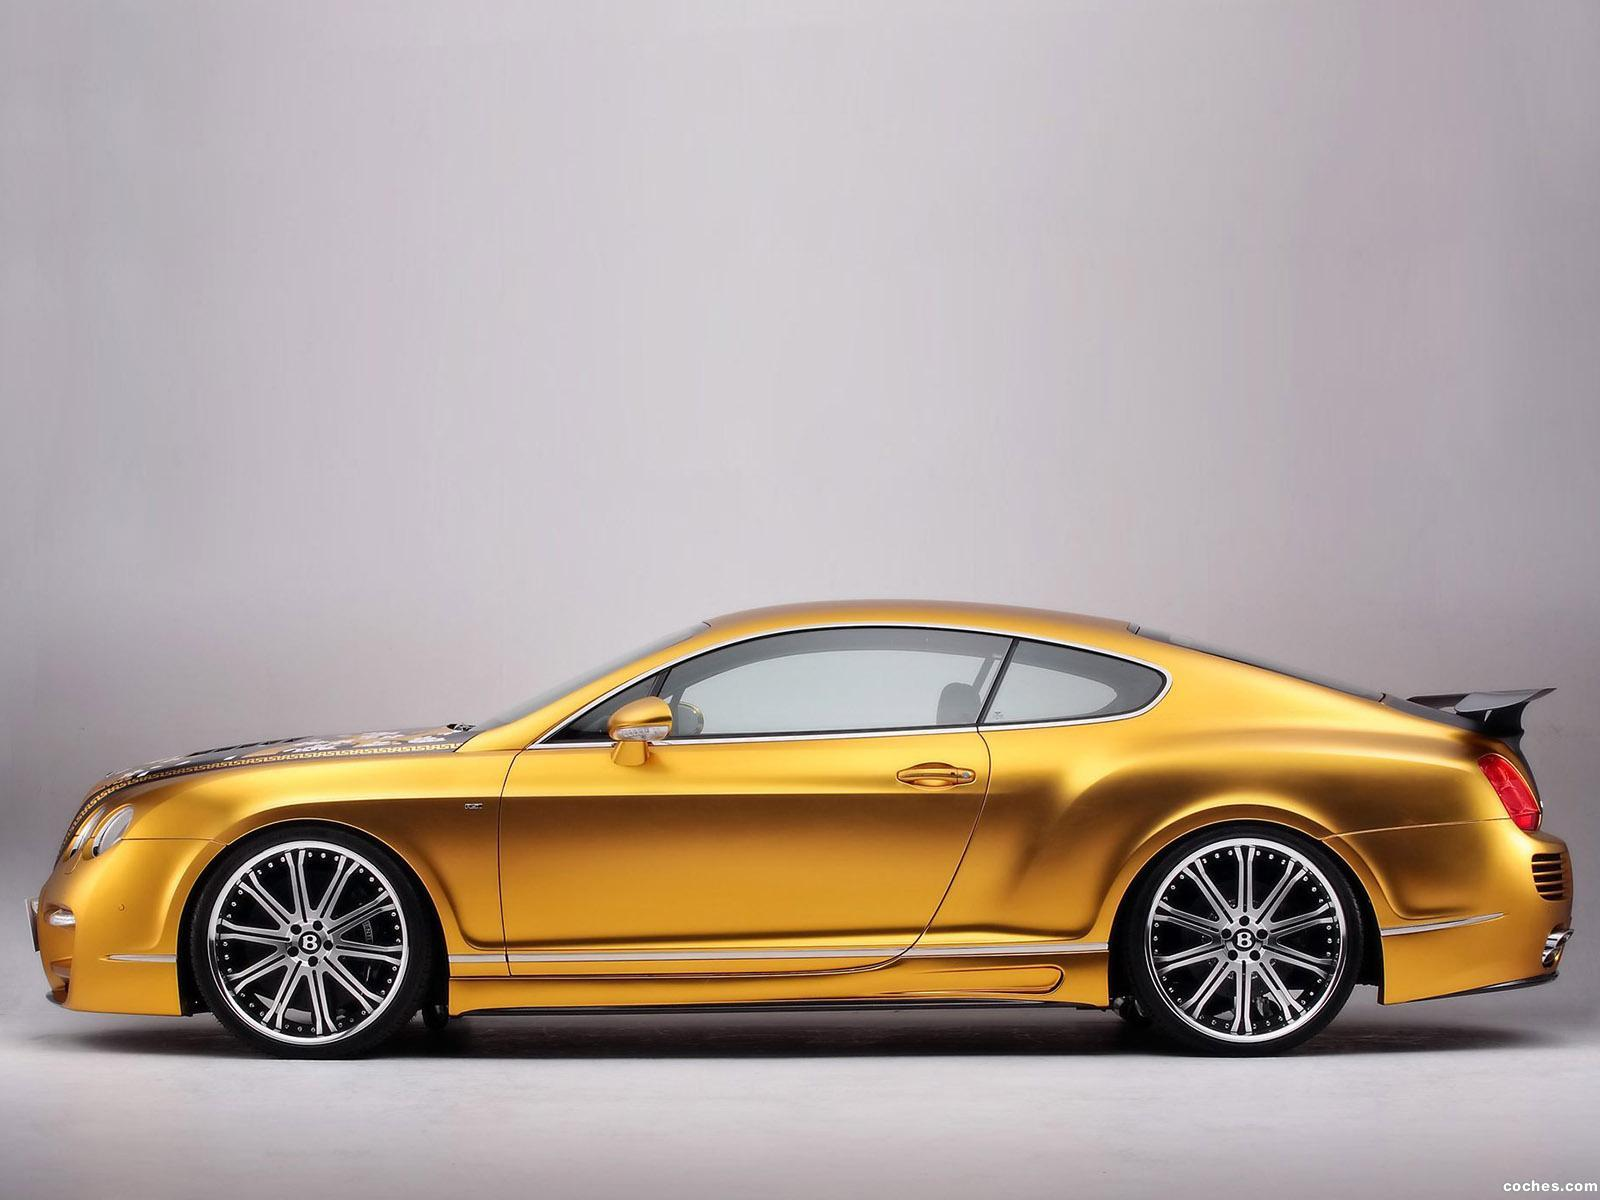 Foto 1 de Bentley Continental GTS Gold 2008